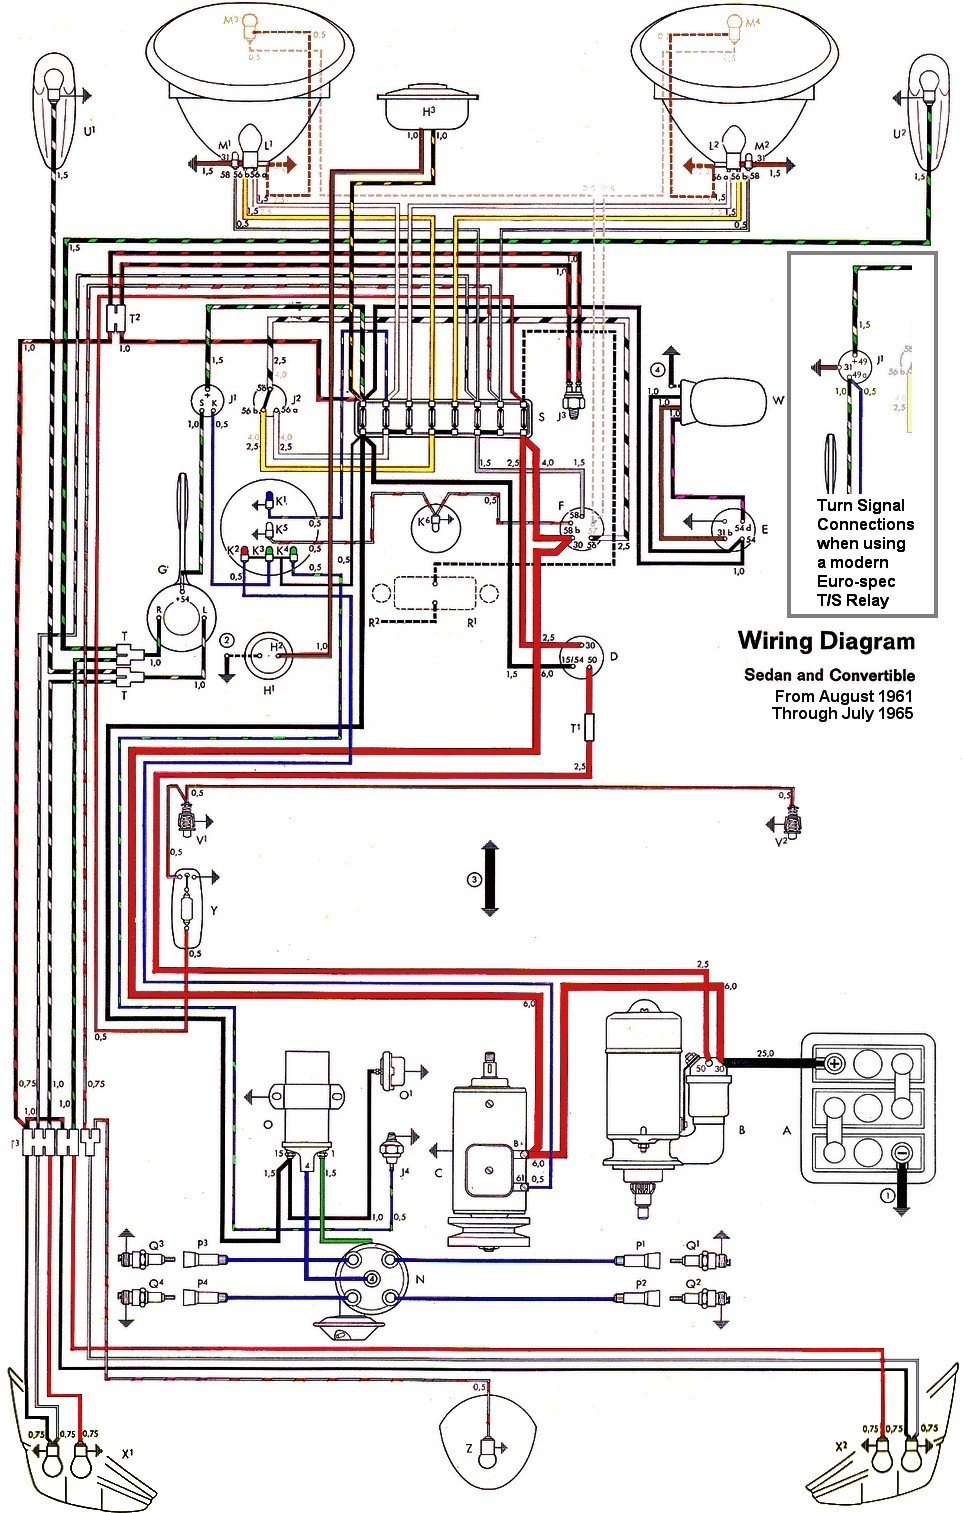 bug_62 65withinset thesamba com type 1 wiring diagrams vw beetle wiring diagram at cos-gaming.co